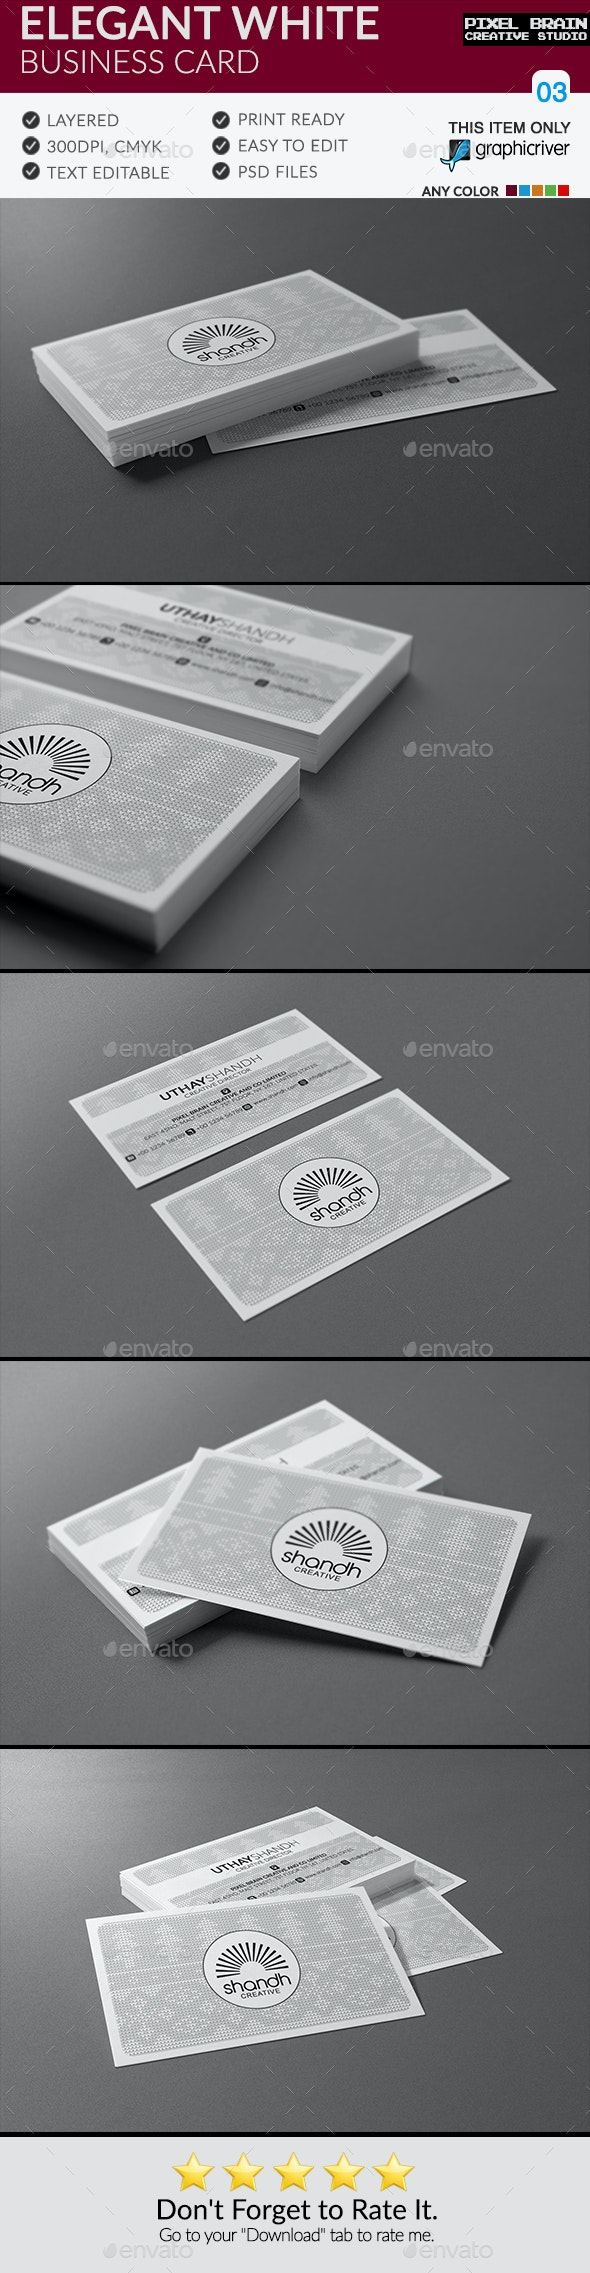 Elegant White Business Card - Corporate Business Cards